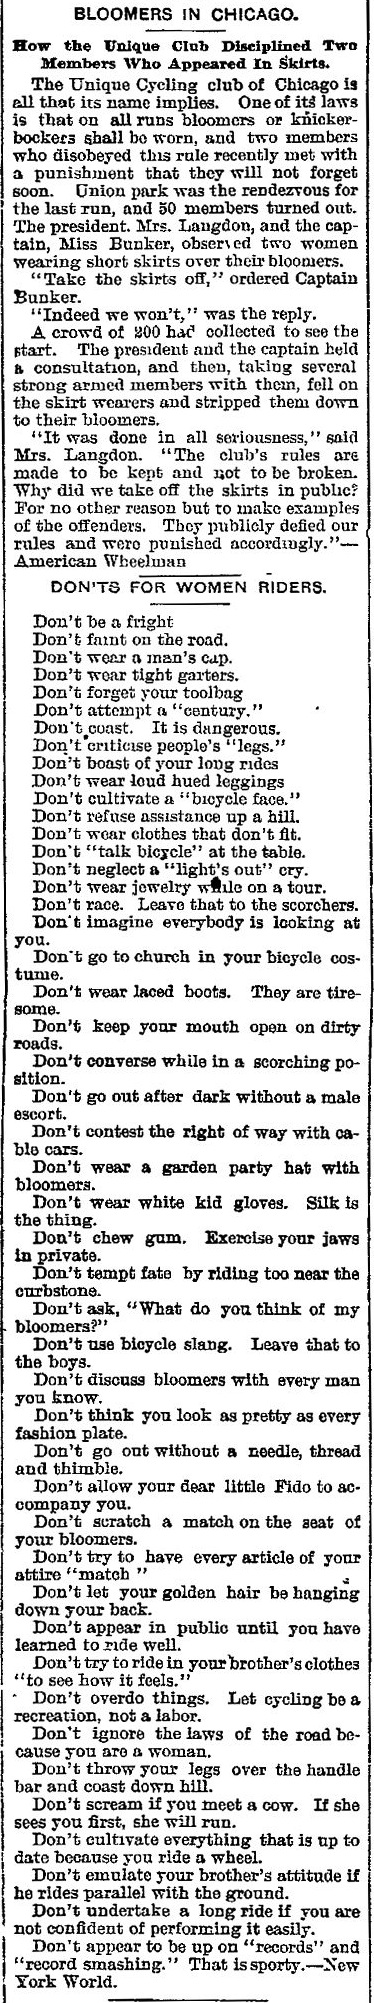 Unique Cycling Club Rules for Women 1895